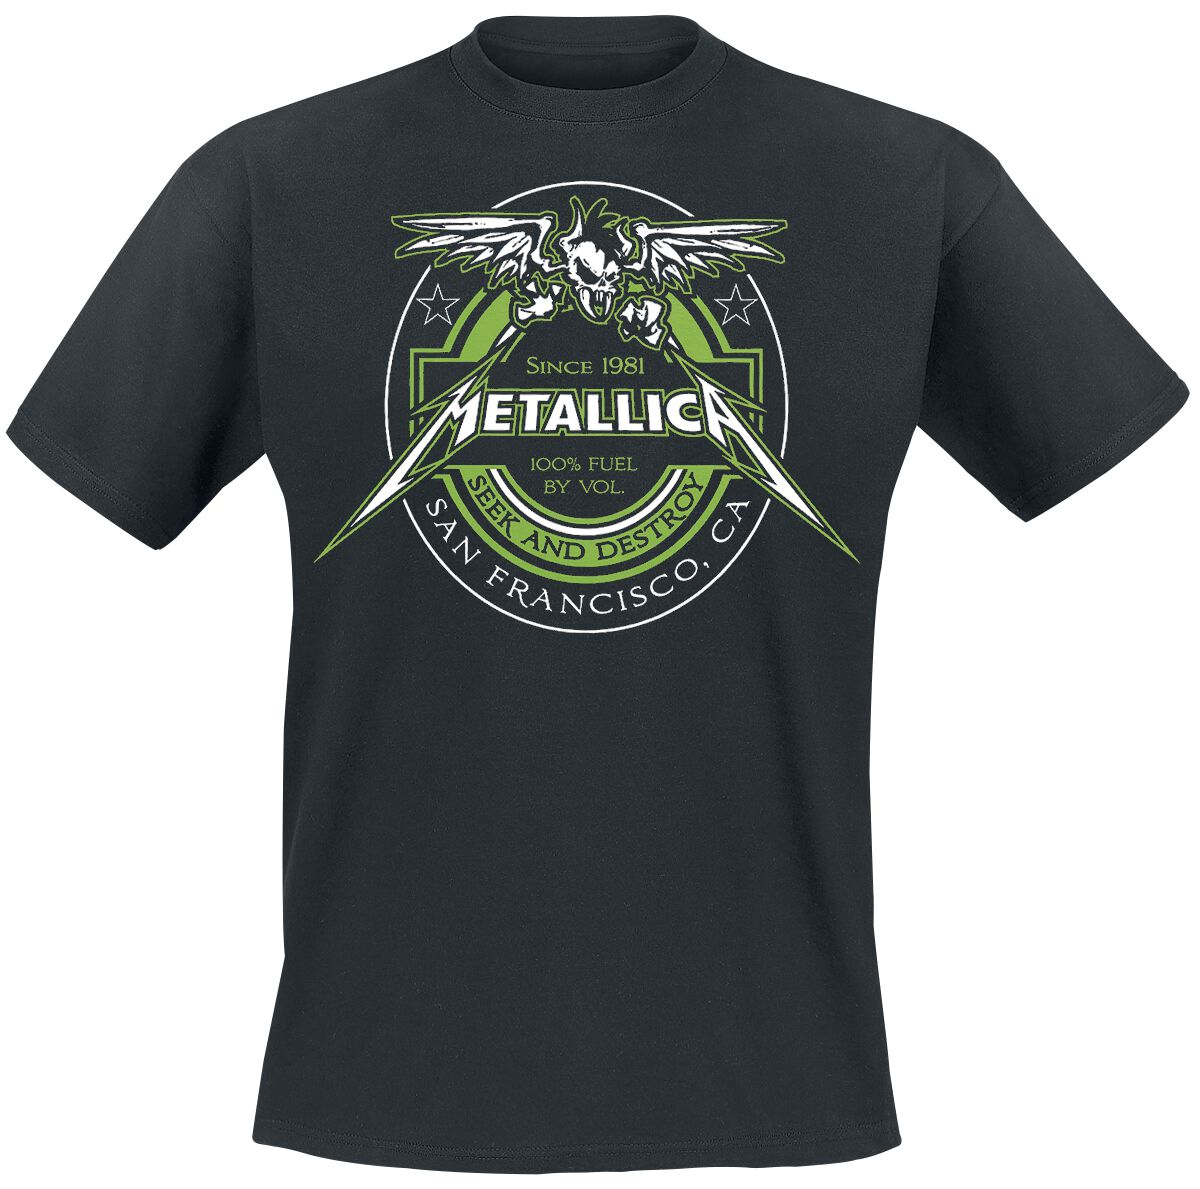 Image of   Metallica 100% Fuel - Seek And Destroy T-Shirt sort